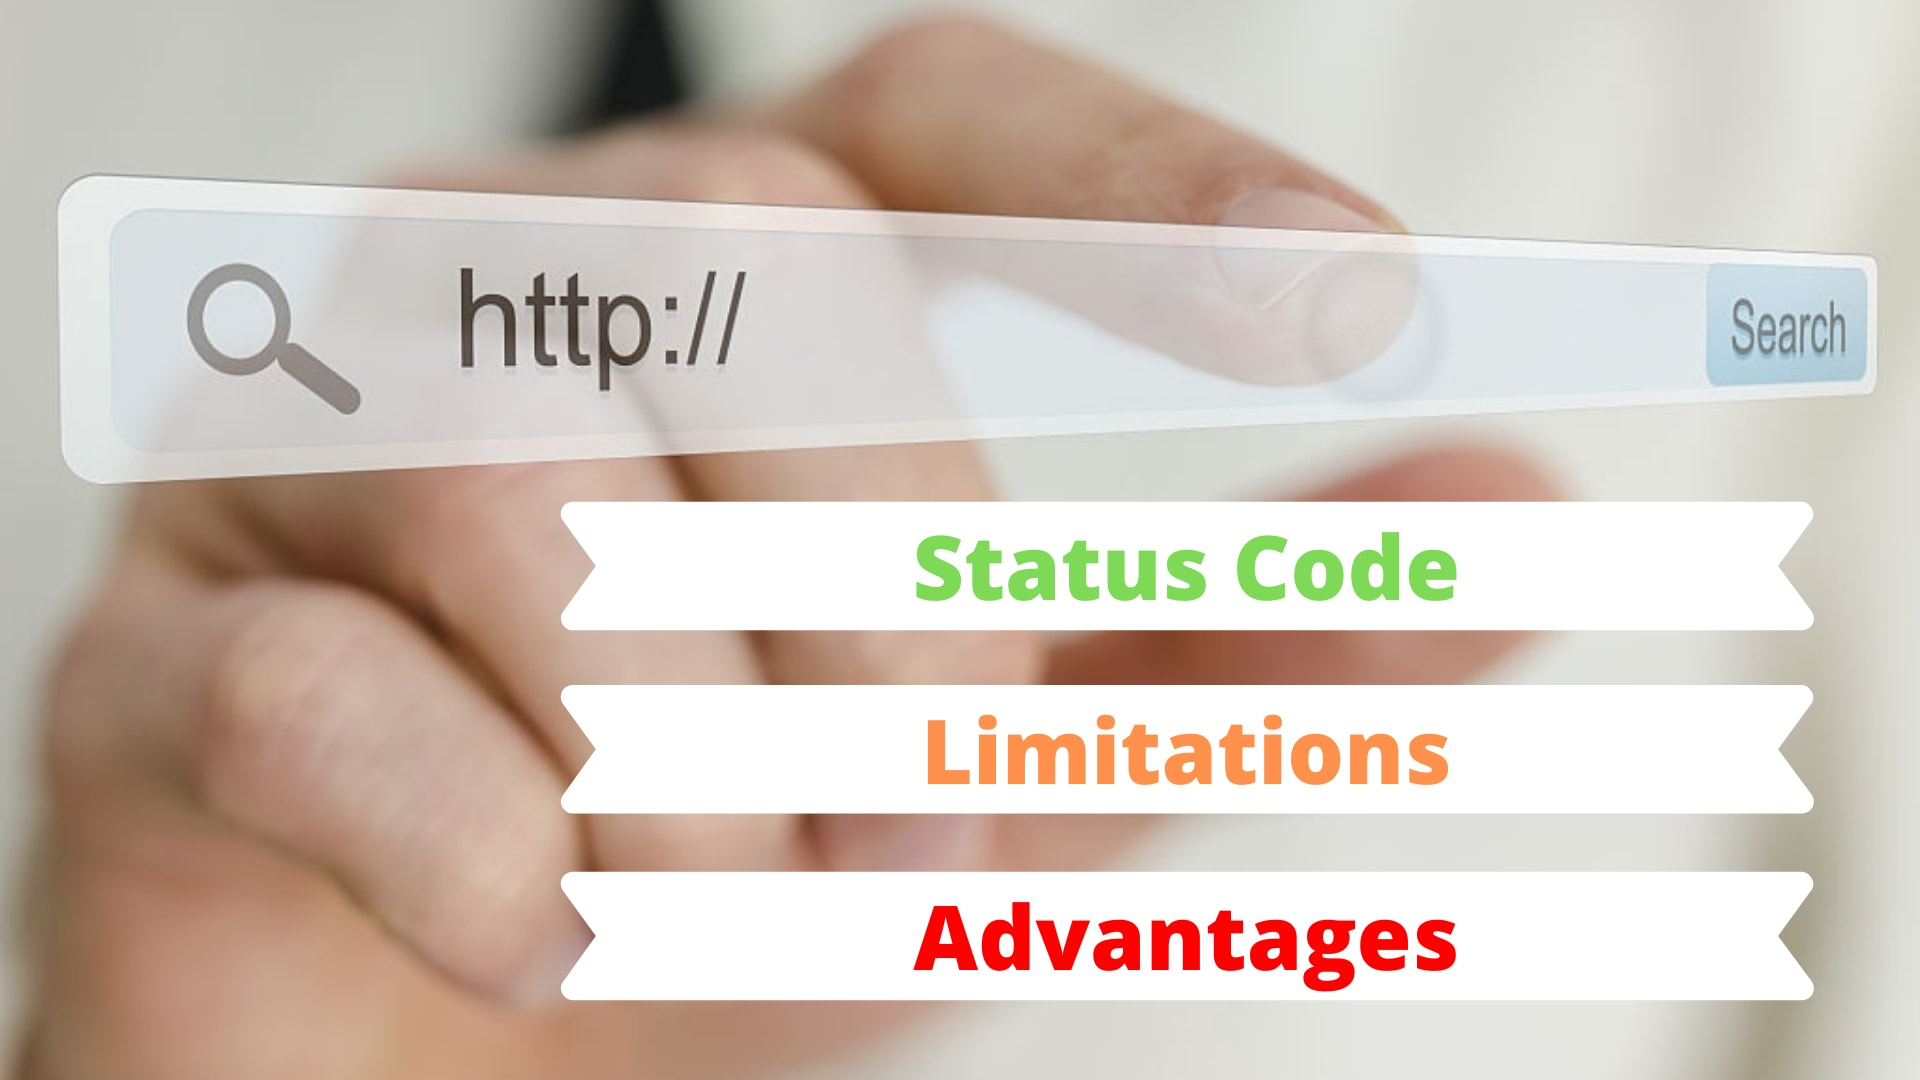 http full form and learn more about status code, Limitations